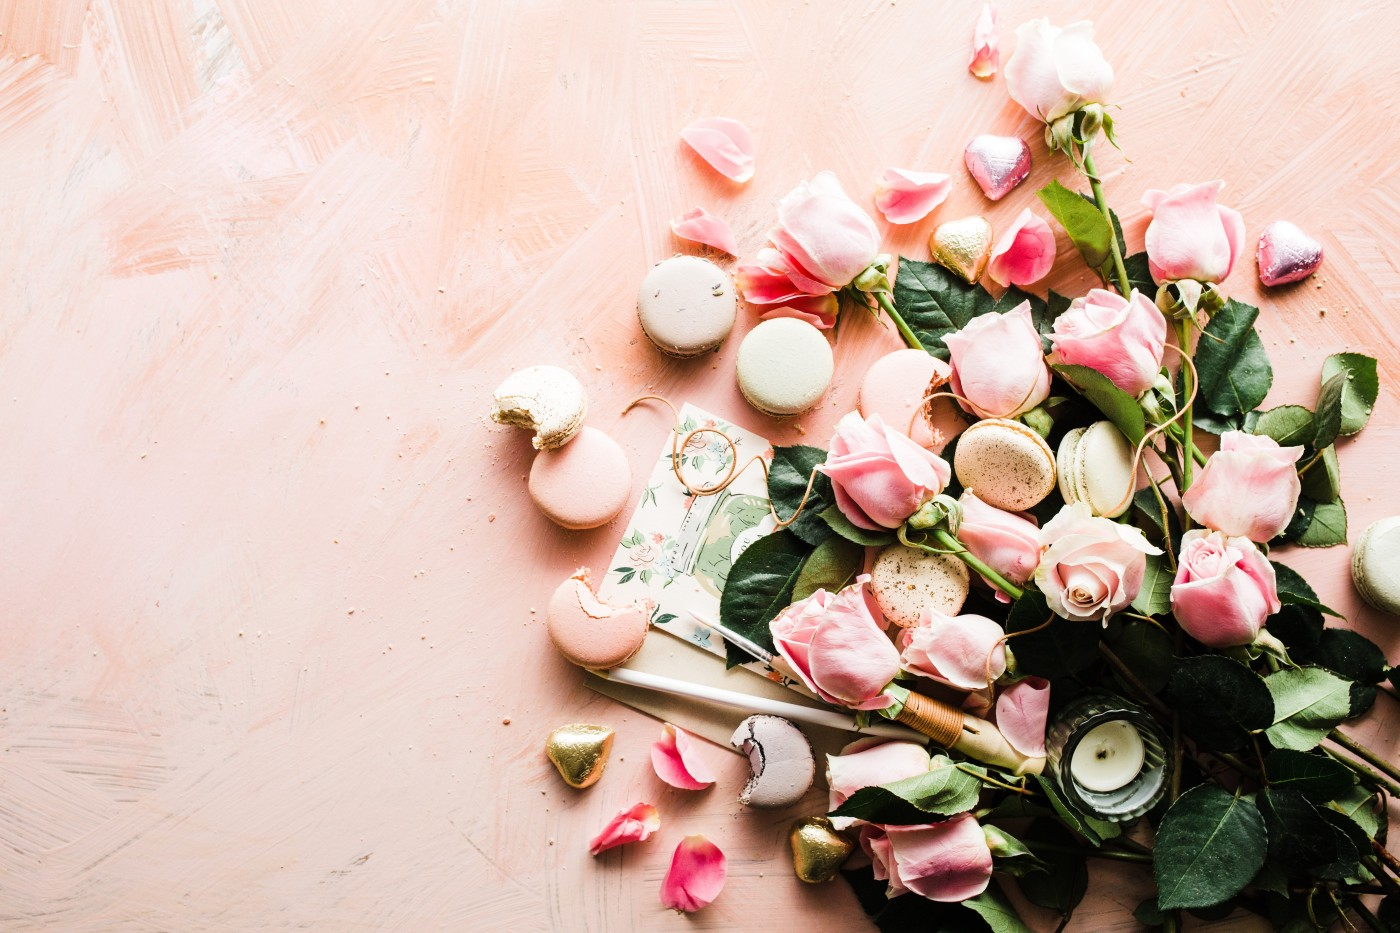 Roses and Macarons Photo by Brooke Lark on Unsplash